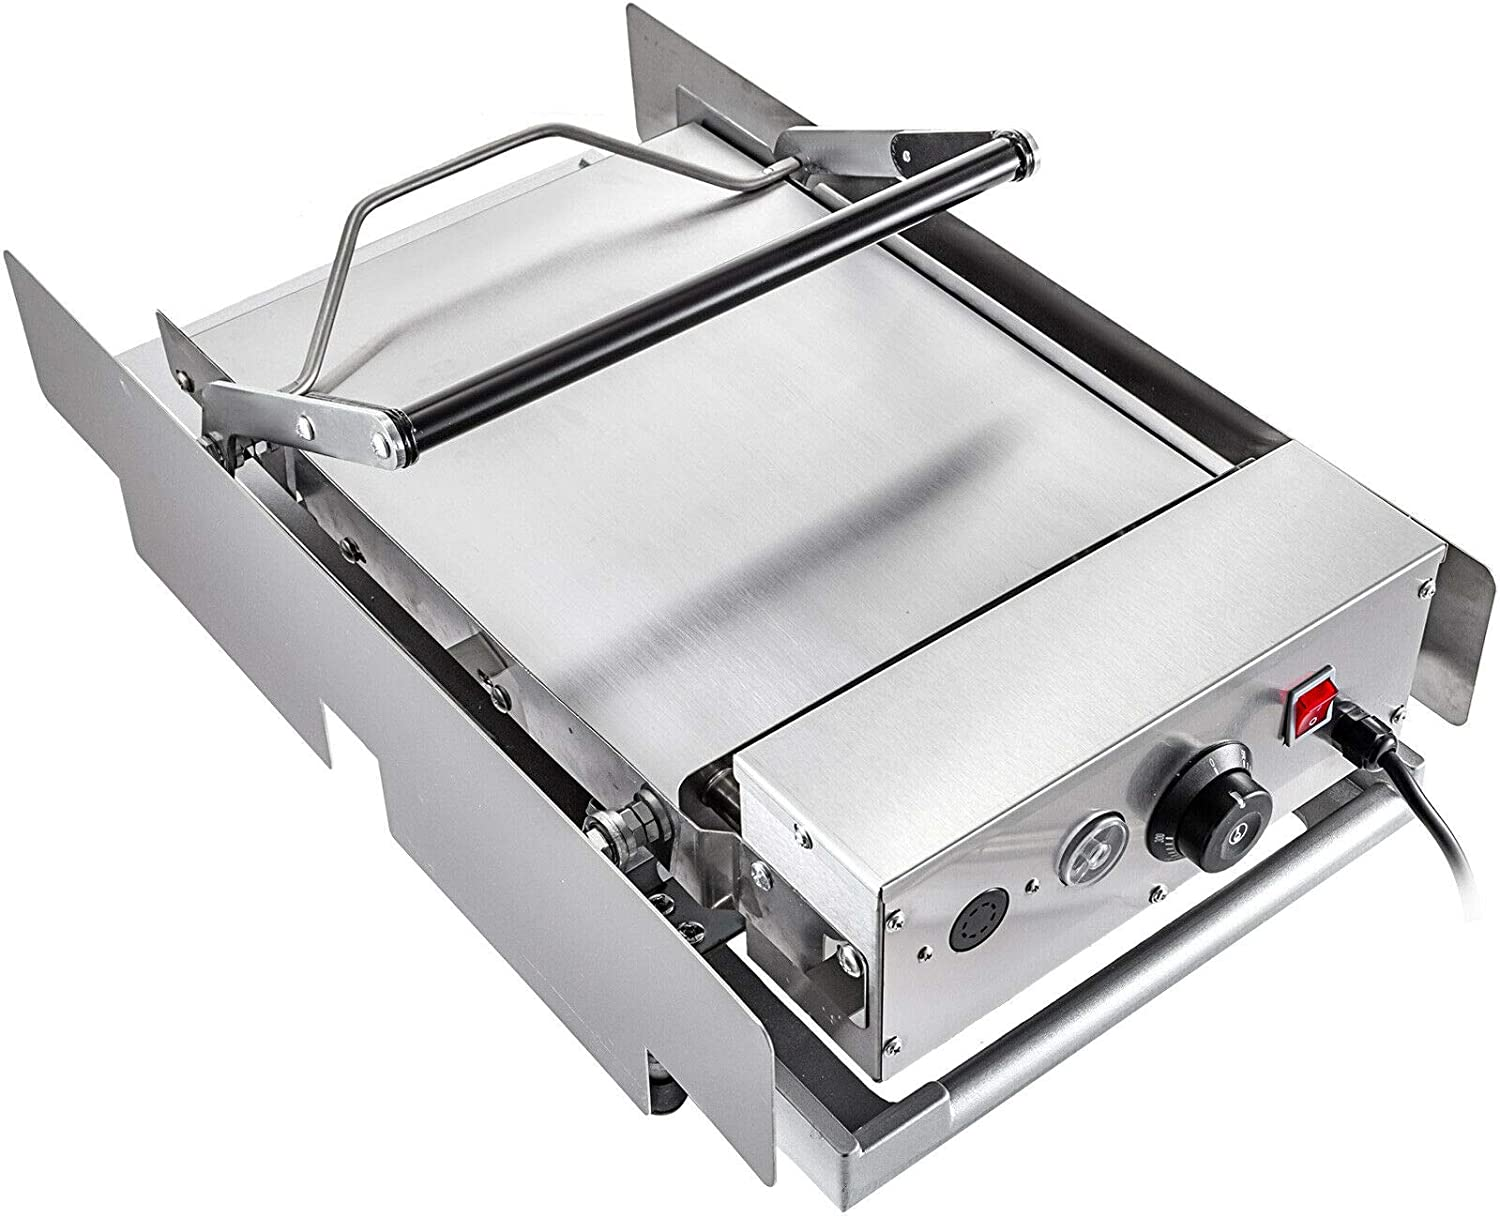 Hamburger Bun Toaster Bun Toaster Commercial Double-Layers for 12 Slices, Size 26.8 x 16.9 x 13.0 inch 122-572 ?, Widely used in Fast-Food Restaurants, Snack Stands, and other Food Industries